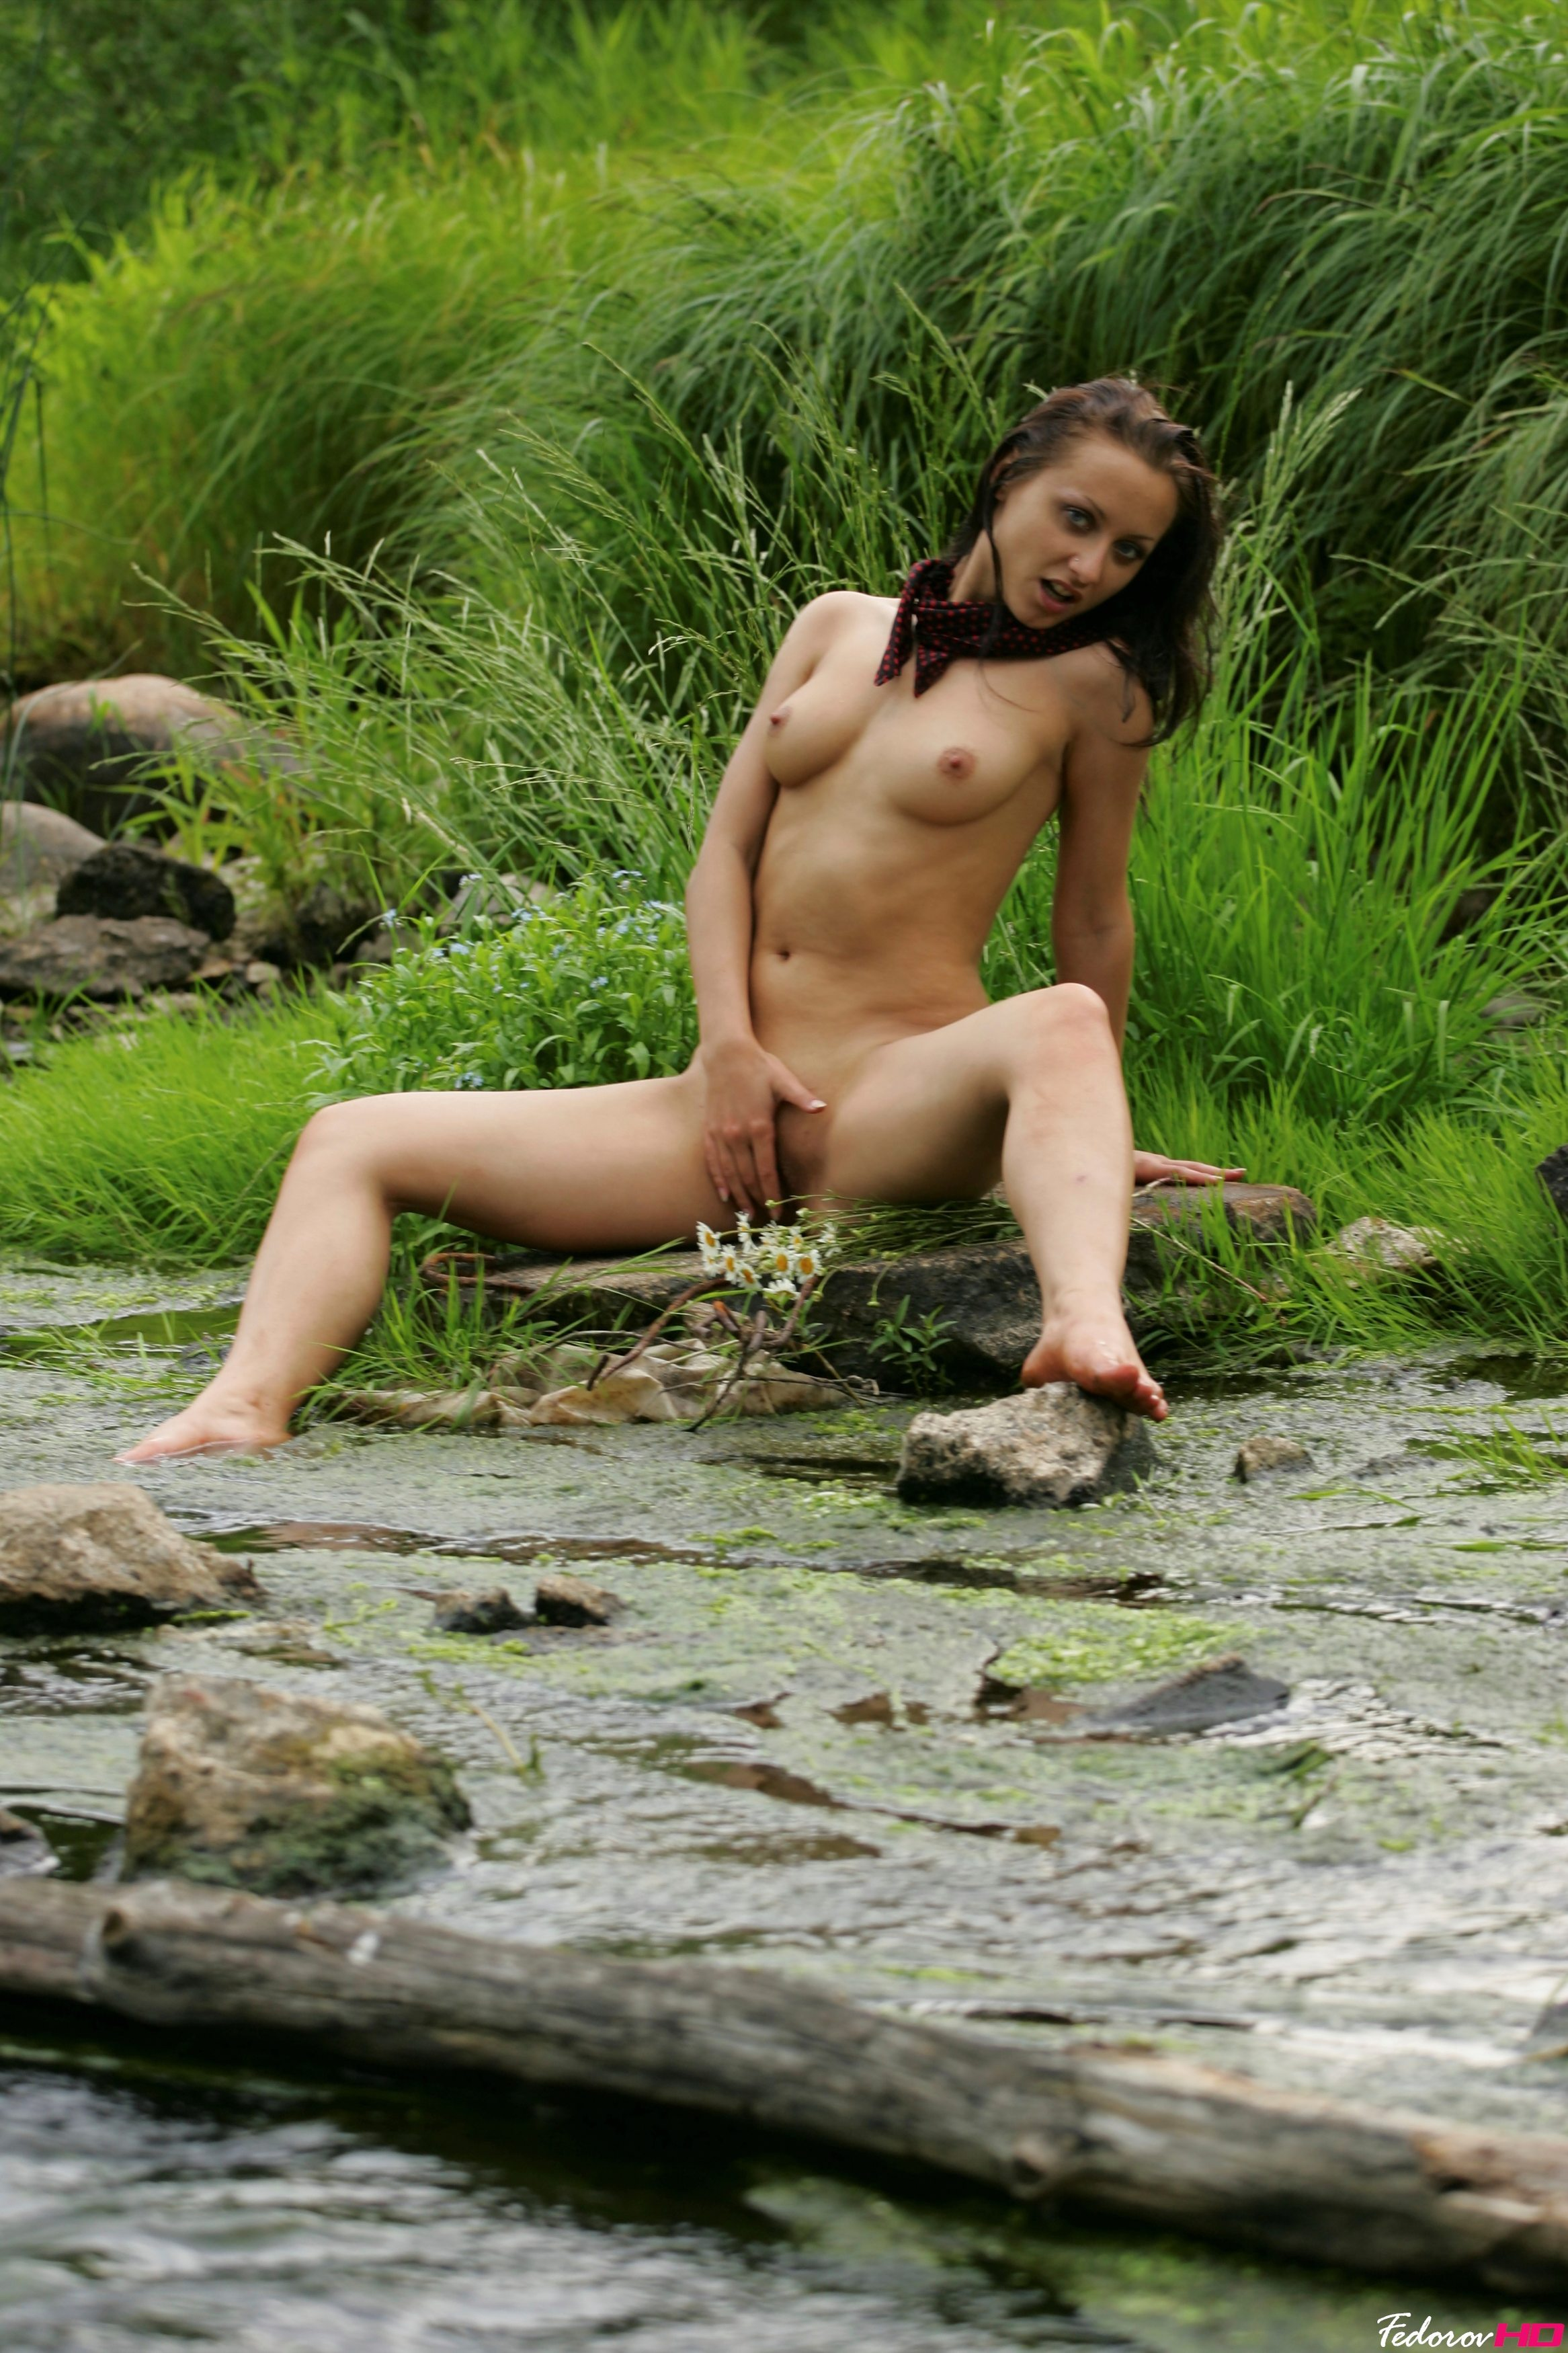 Nude girl in swamp exposed pic